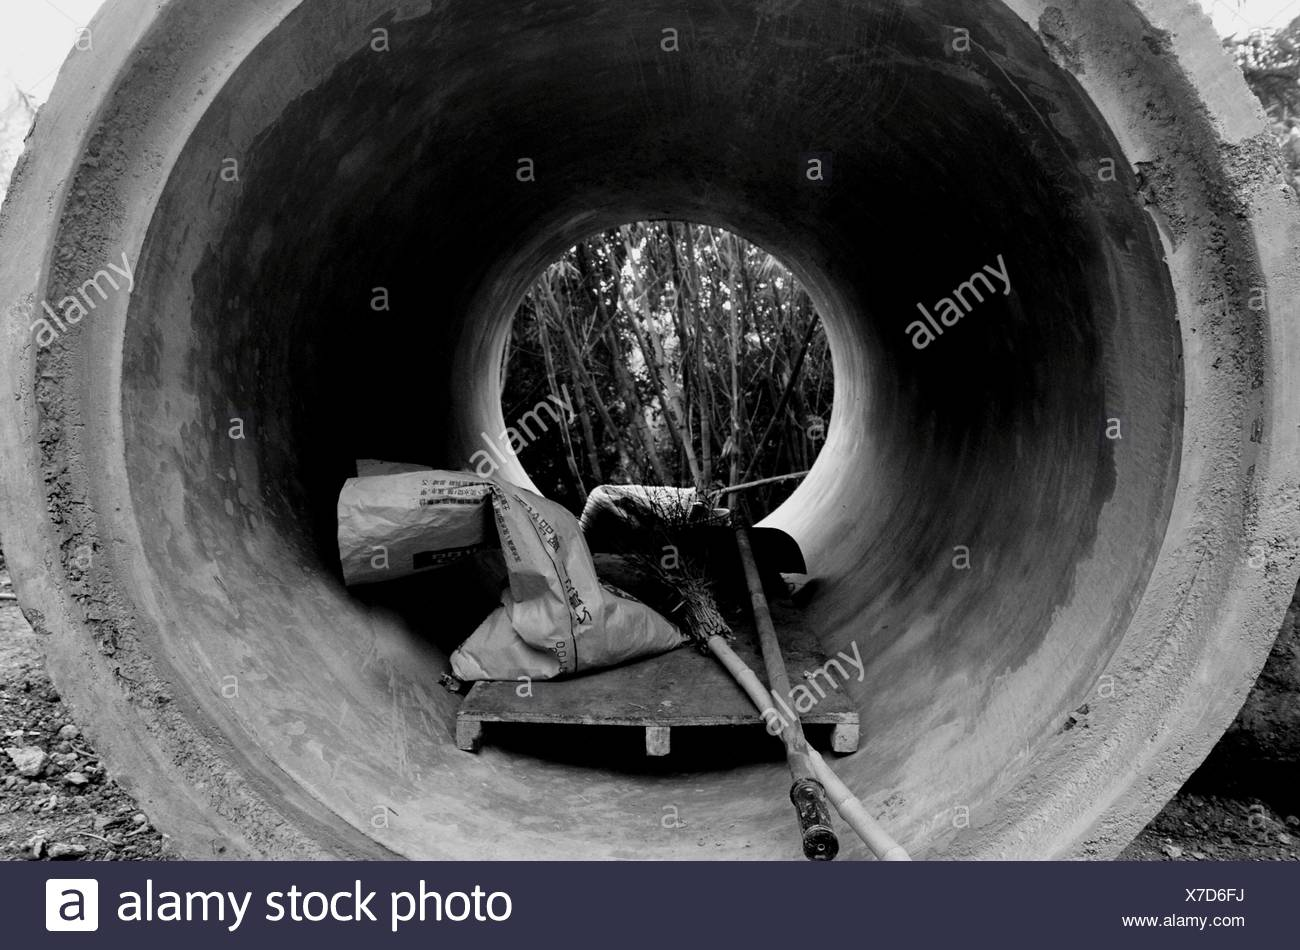 Sack And Work Tools In Cement Pipe - Stock Image